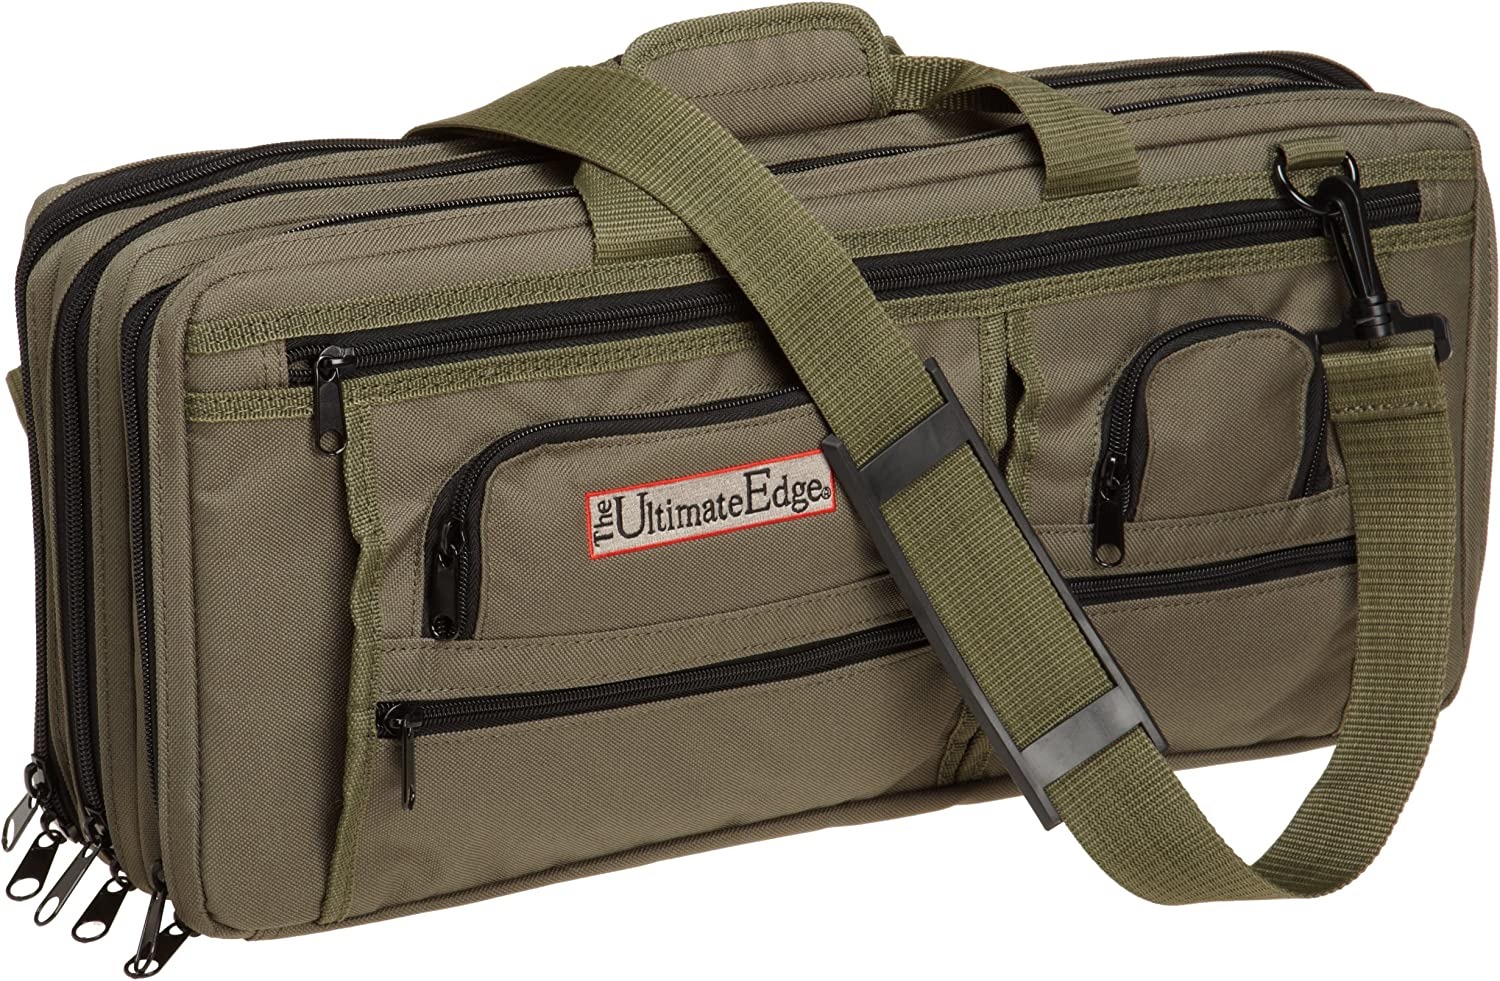 The Ultimate Edge 2001-EDOL Max 82% OFF Deluxe Olive Case Alternative dealer Chef Knife